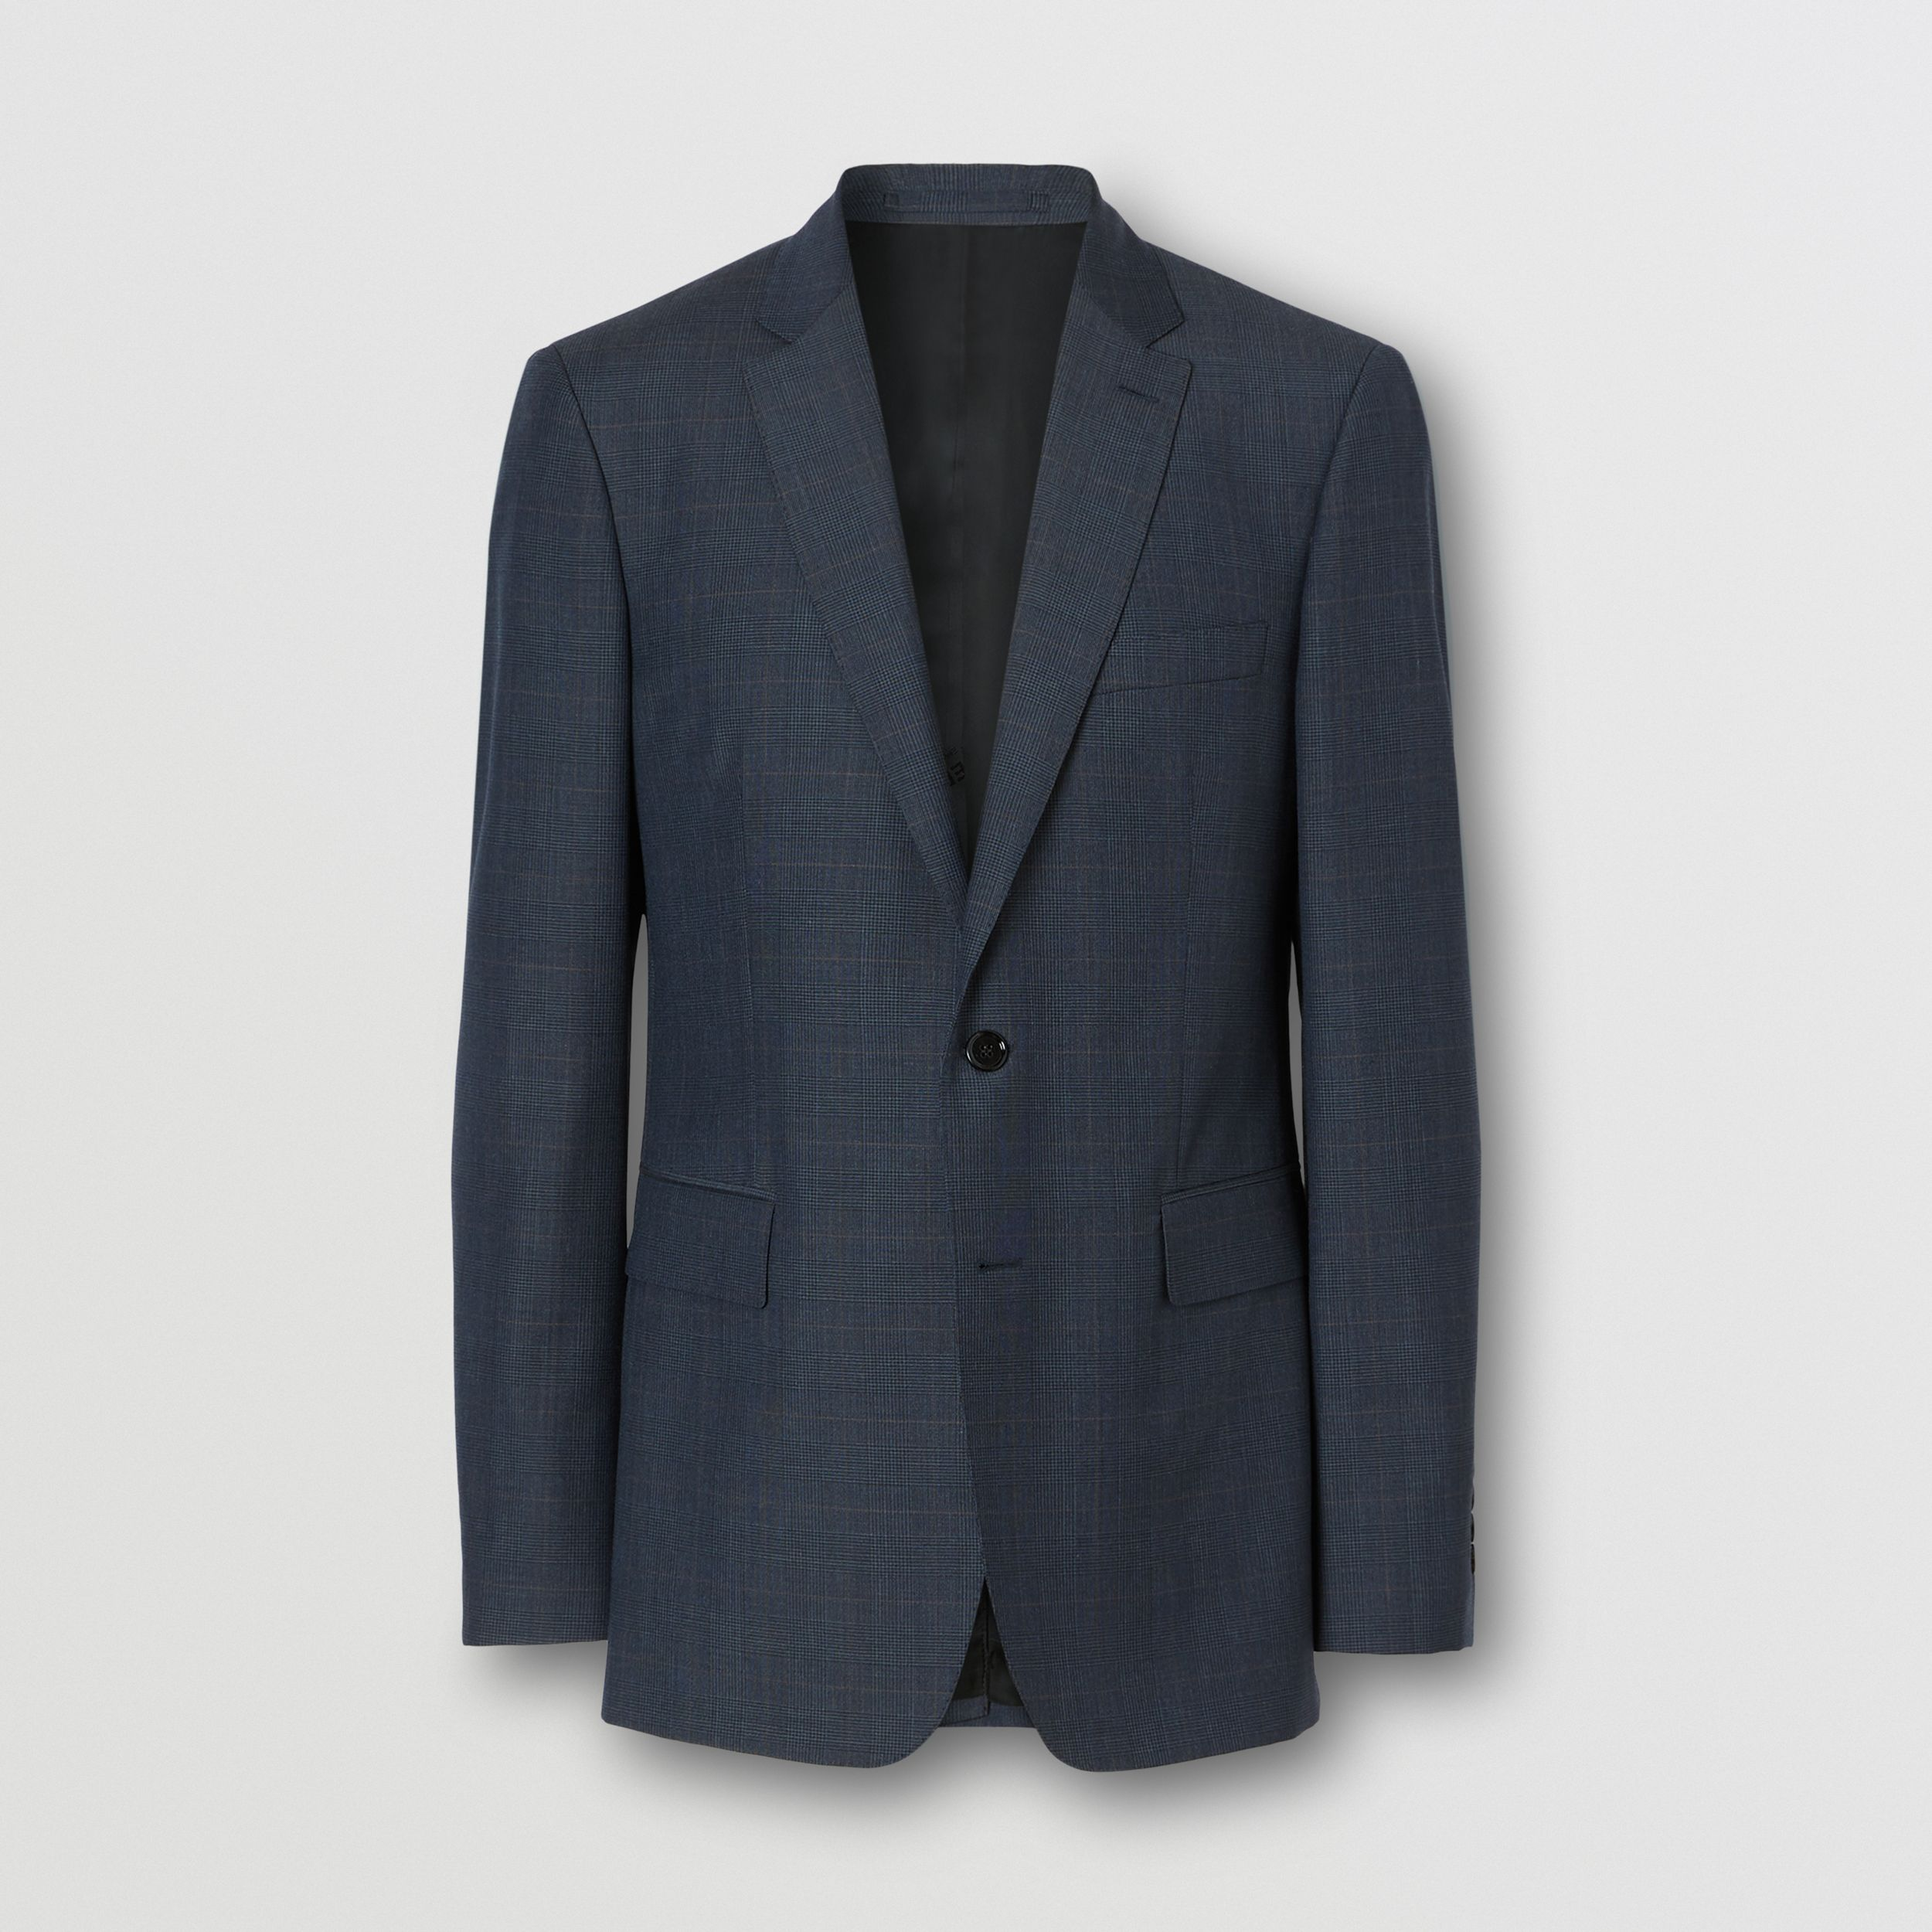 Slim Fit Prince of Wales Check Wool Suit in Carbon Blue - Men | Burberry - 4